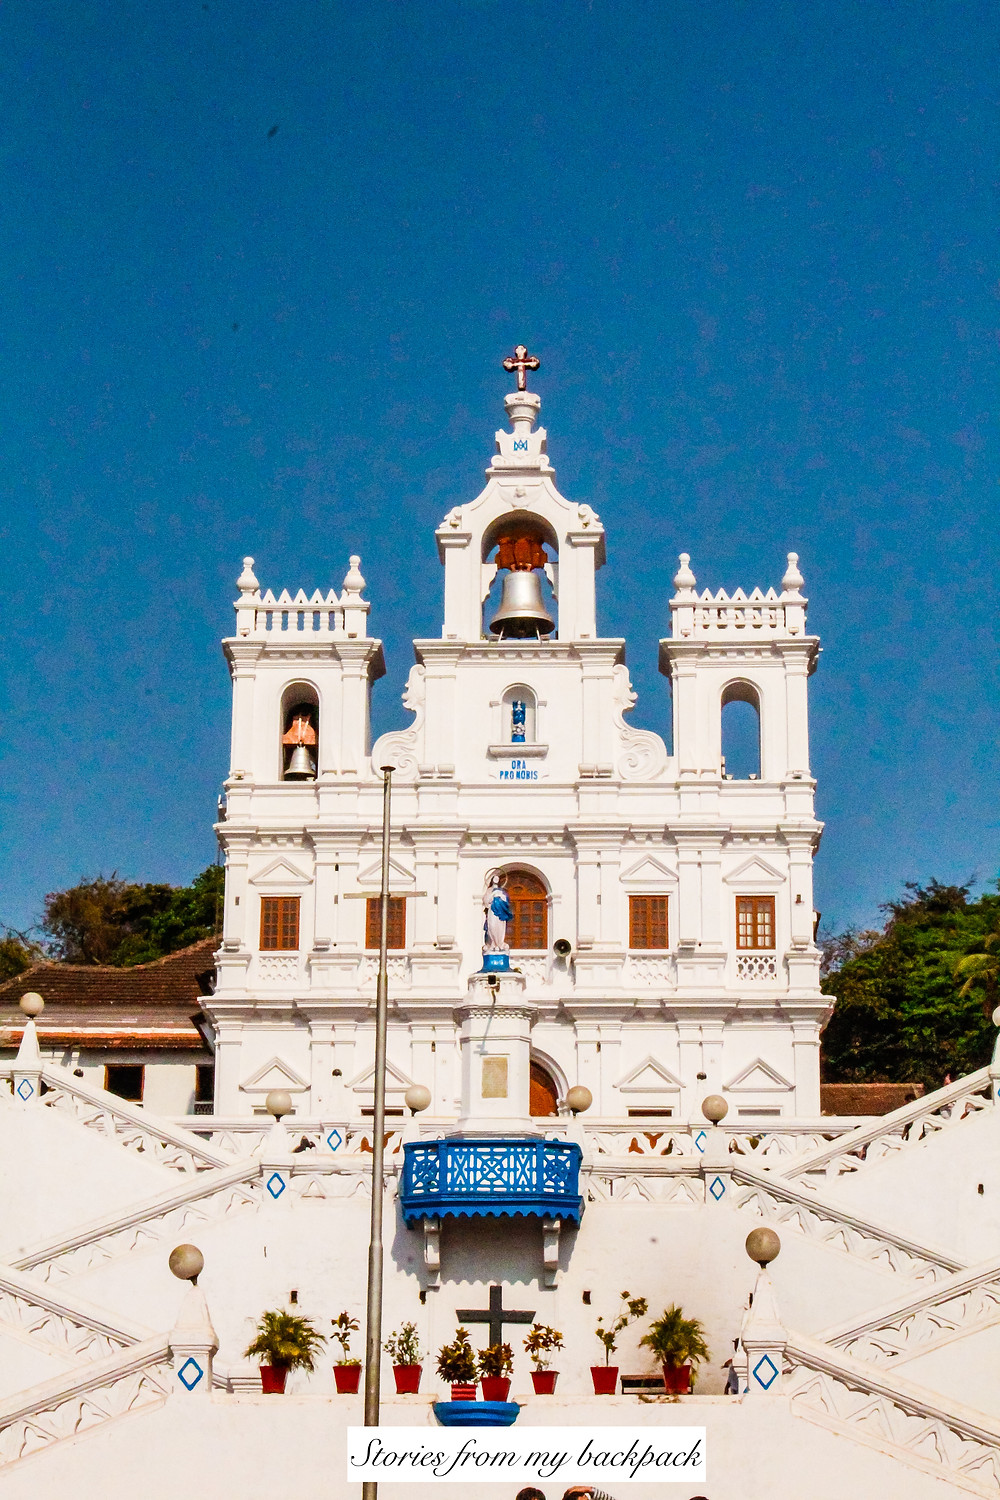 Our Lady of Immaculate conception church, panjim, goa, old goa, portuguese church, Portuguese architecture